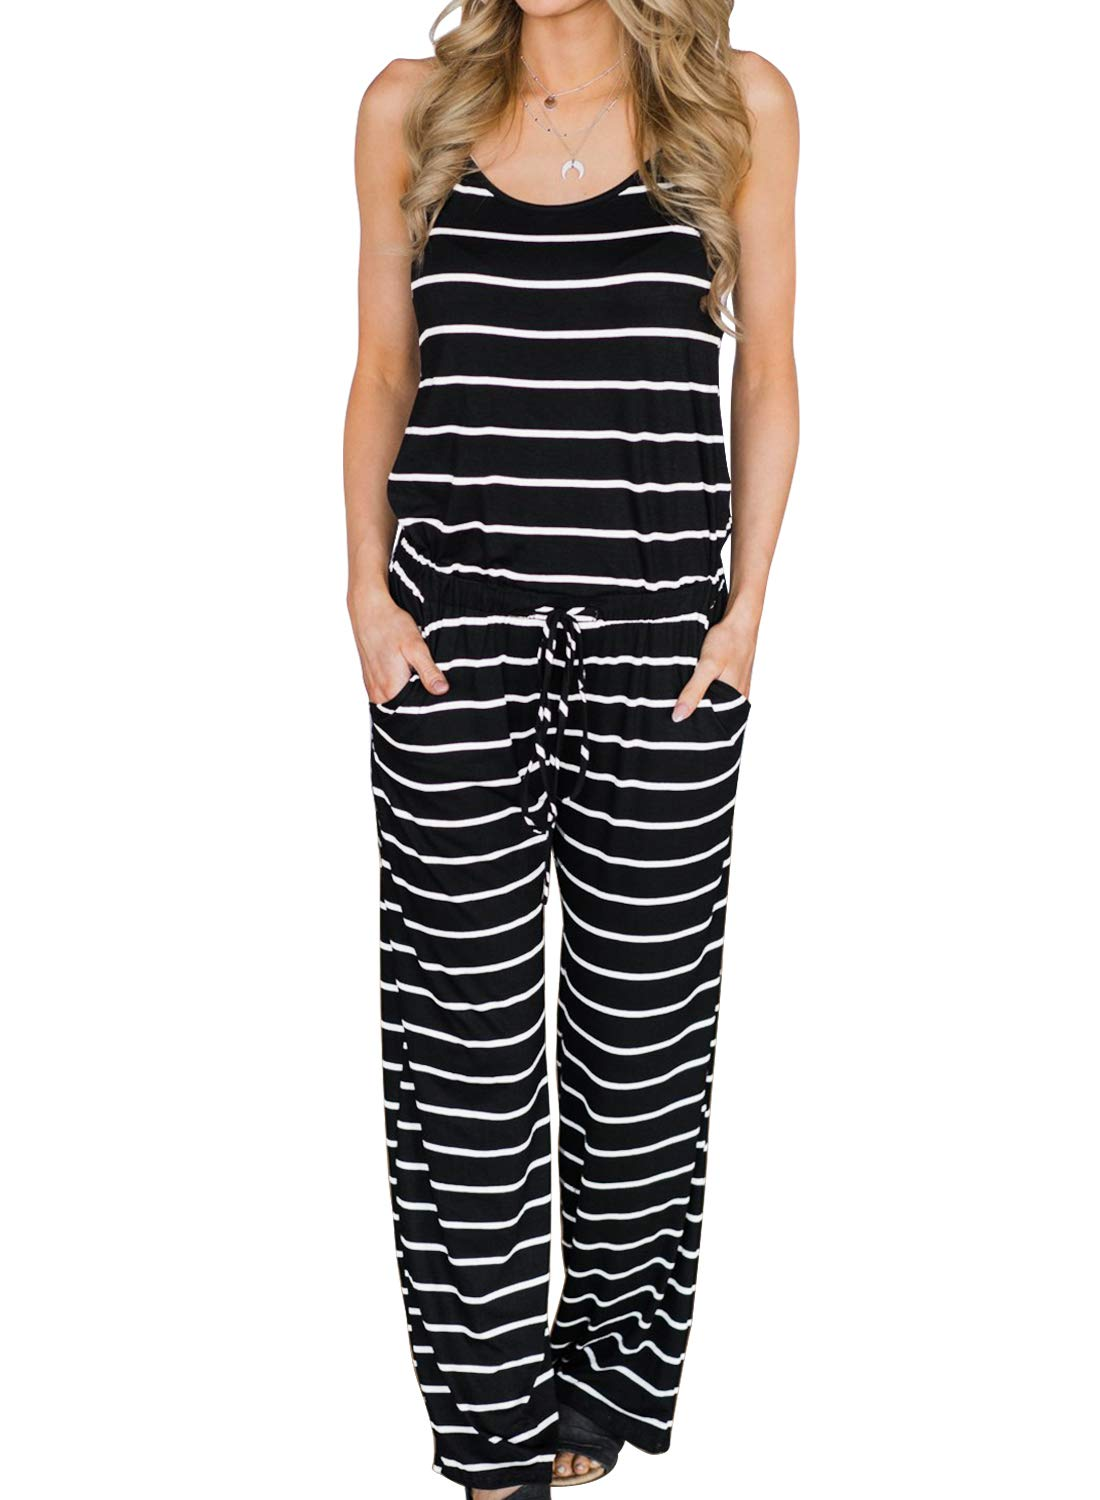 MIHOLL Women's Summer Striped Jumpsuit Casual Loose Sleeveless Jumpsuit Rompers (XX-Large, C-White Black)